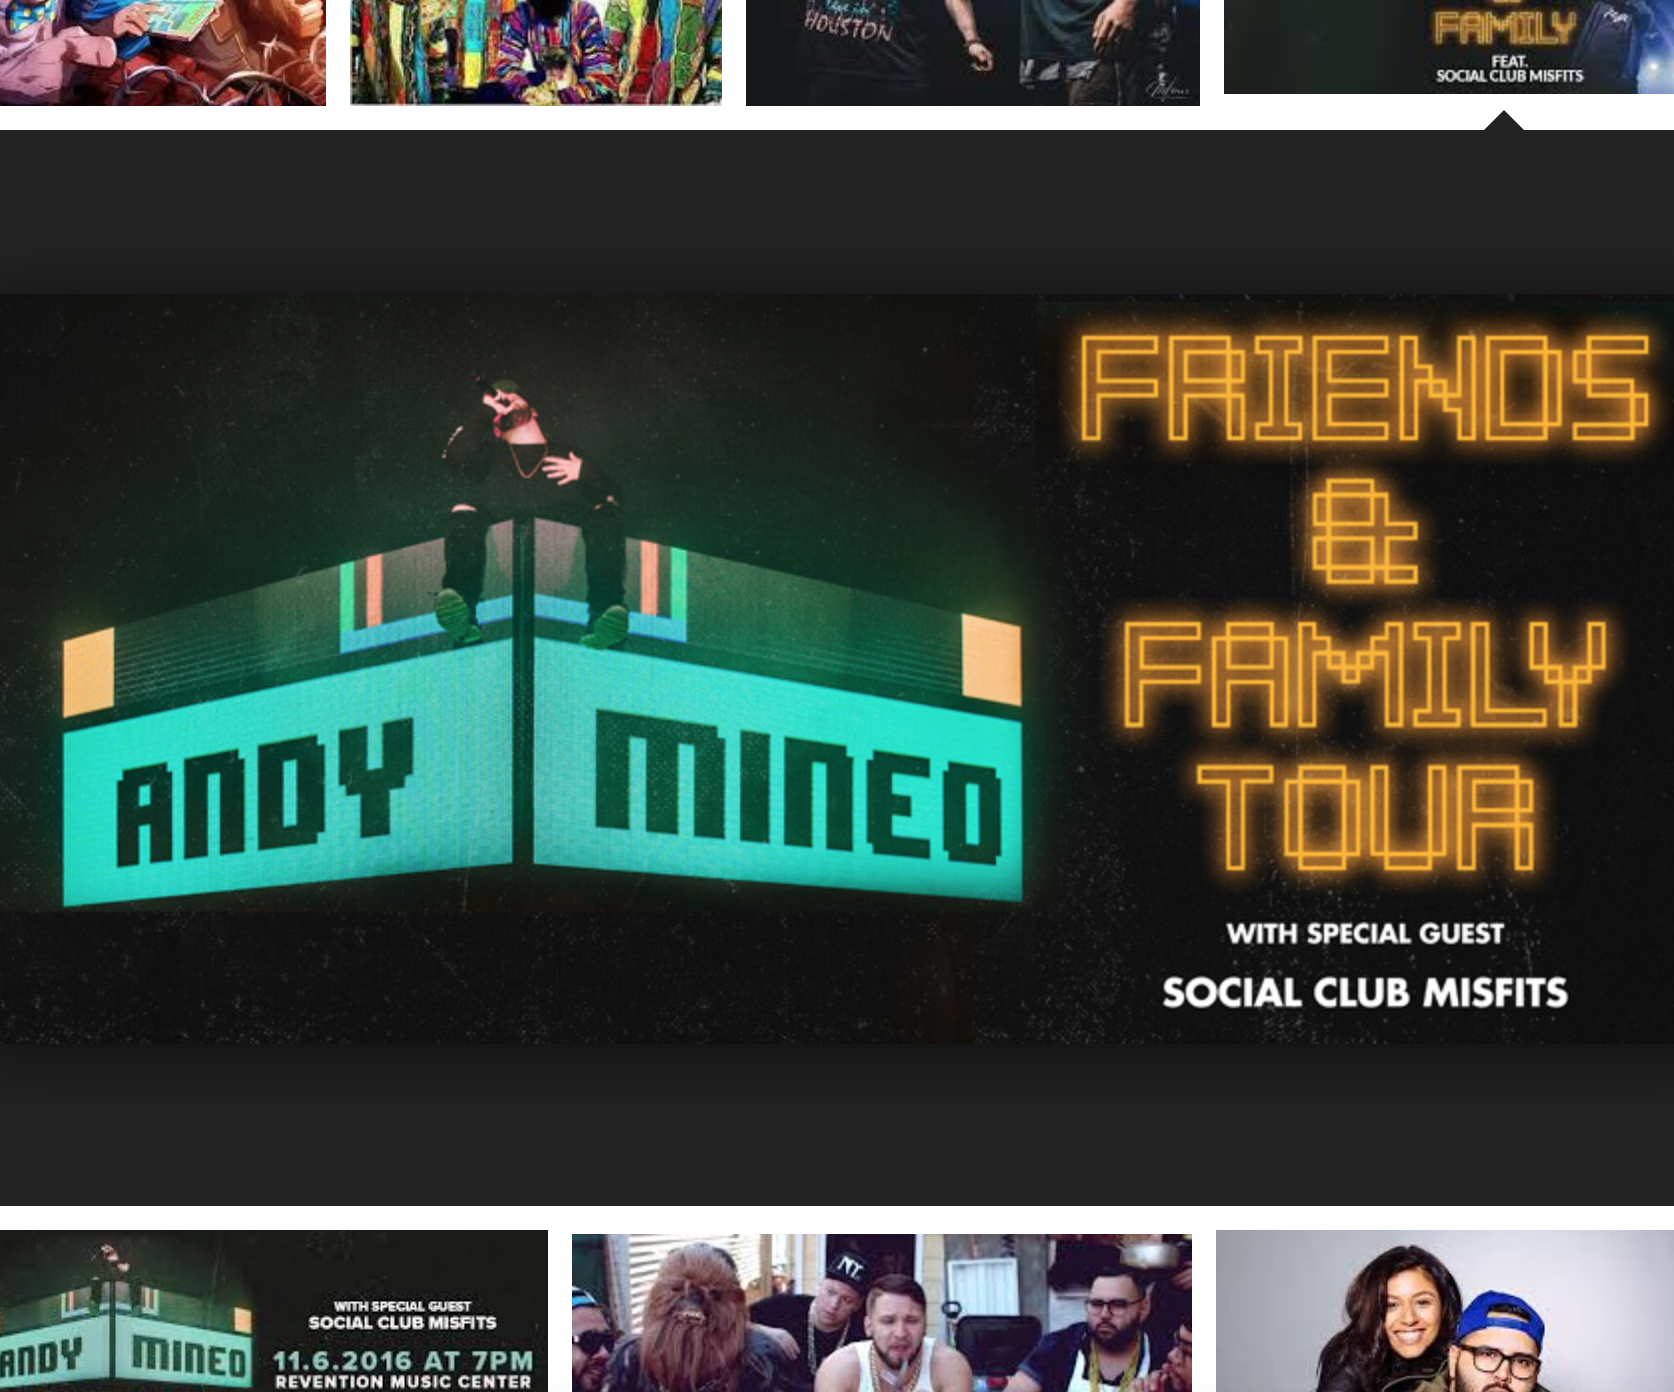 Andy Mineo - Friends & Family Tour - World Vision Volunteer - Columbia, SC